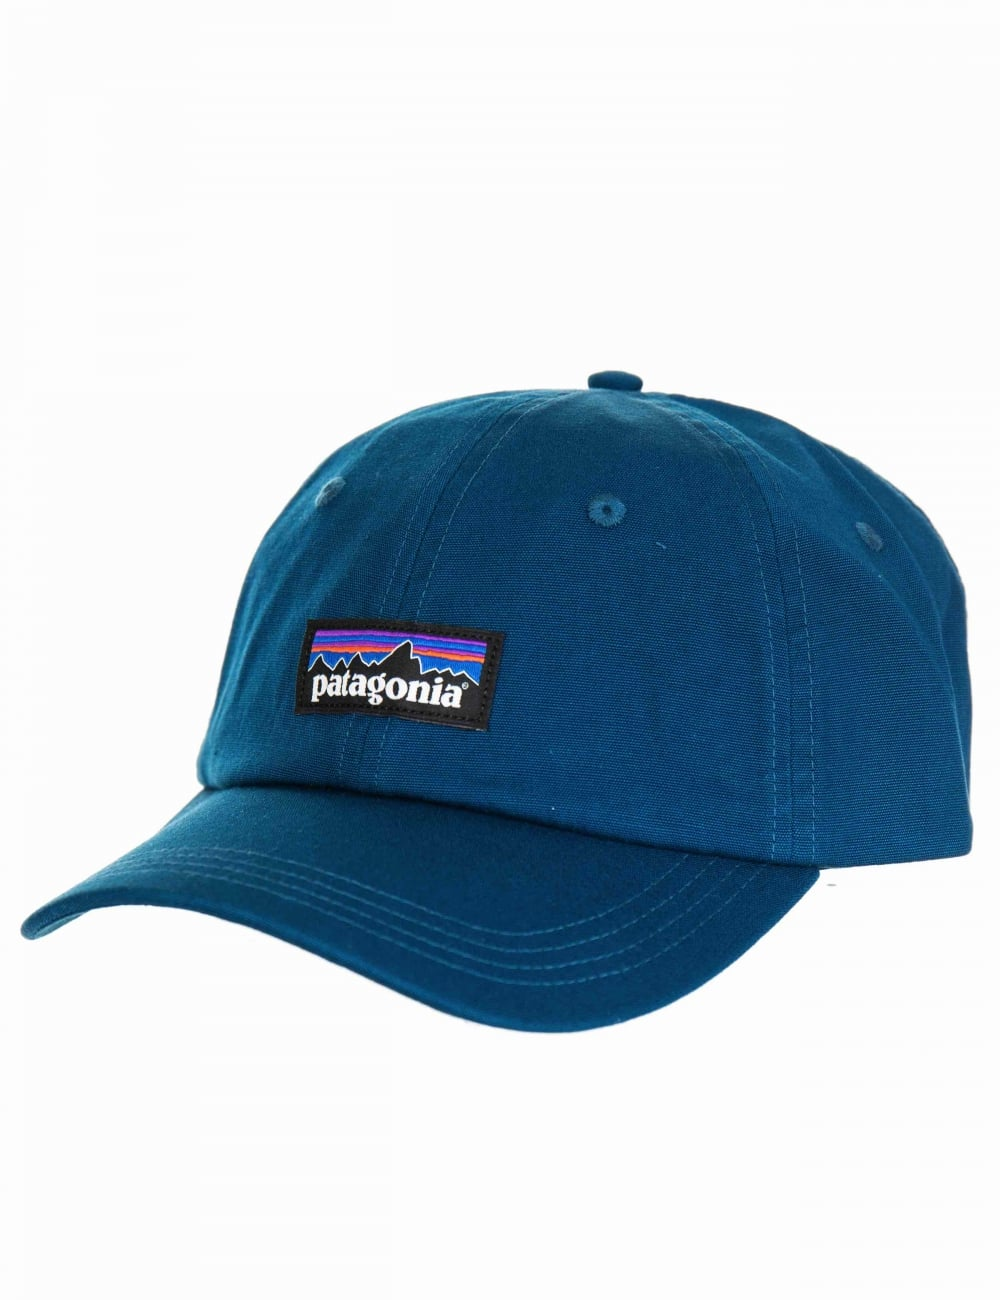 Patagonia P-6 Logo Trad Cap - Big Sur Blue - Accessories from Fat ... 2eac4639c58